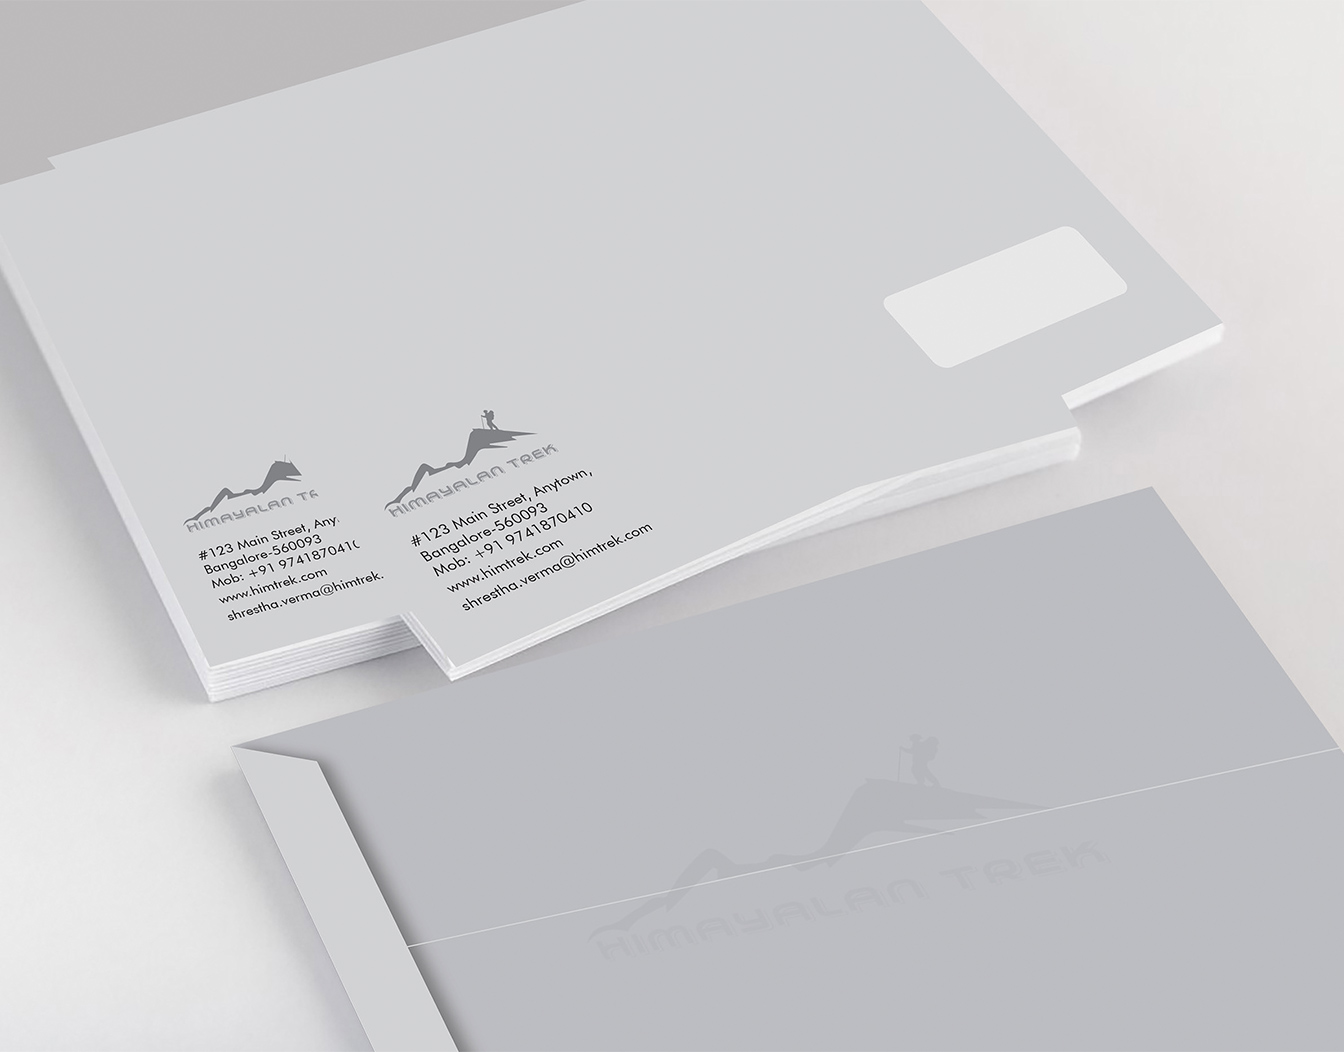 Grey custom business envelopes with windows